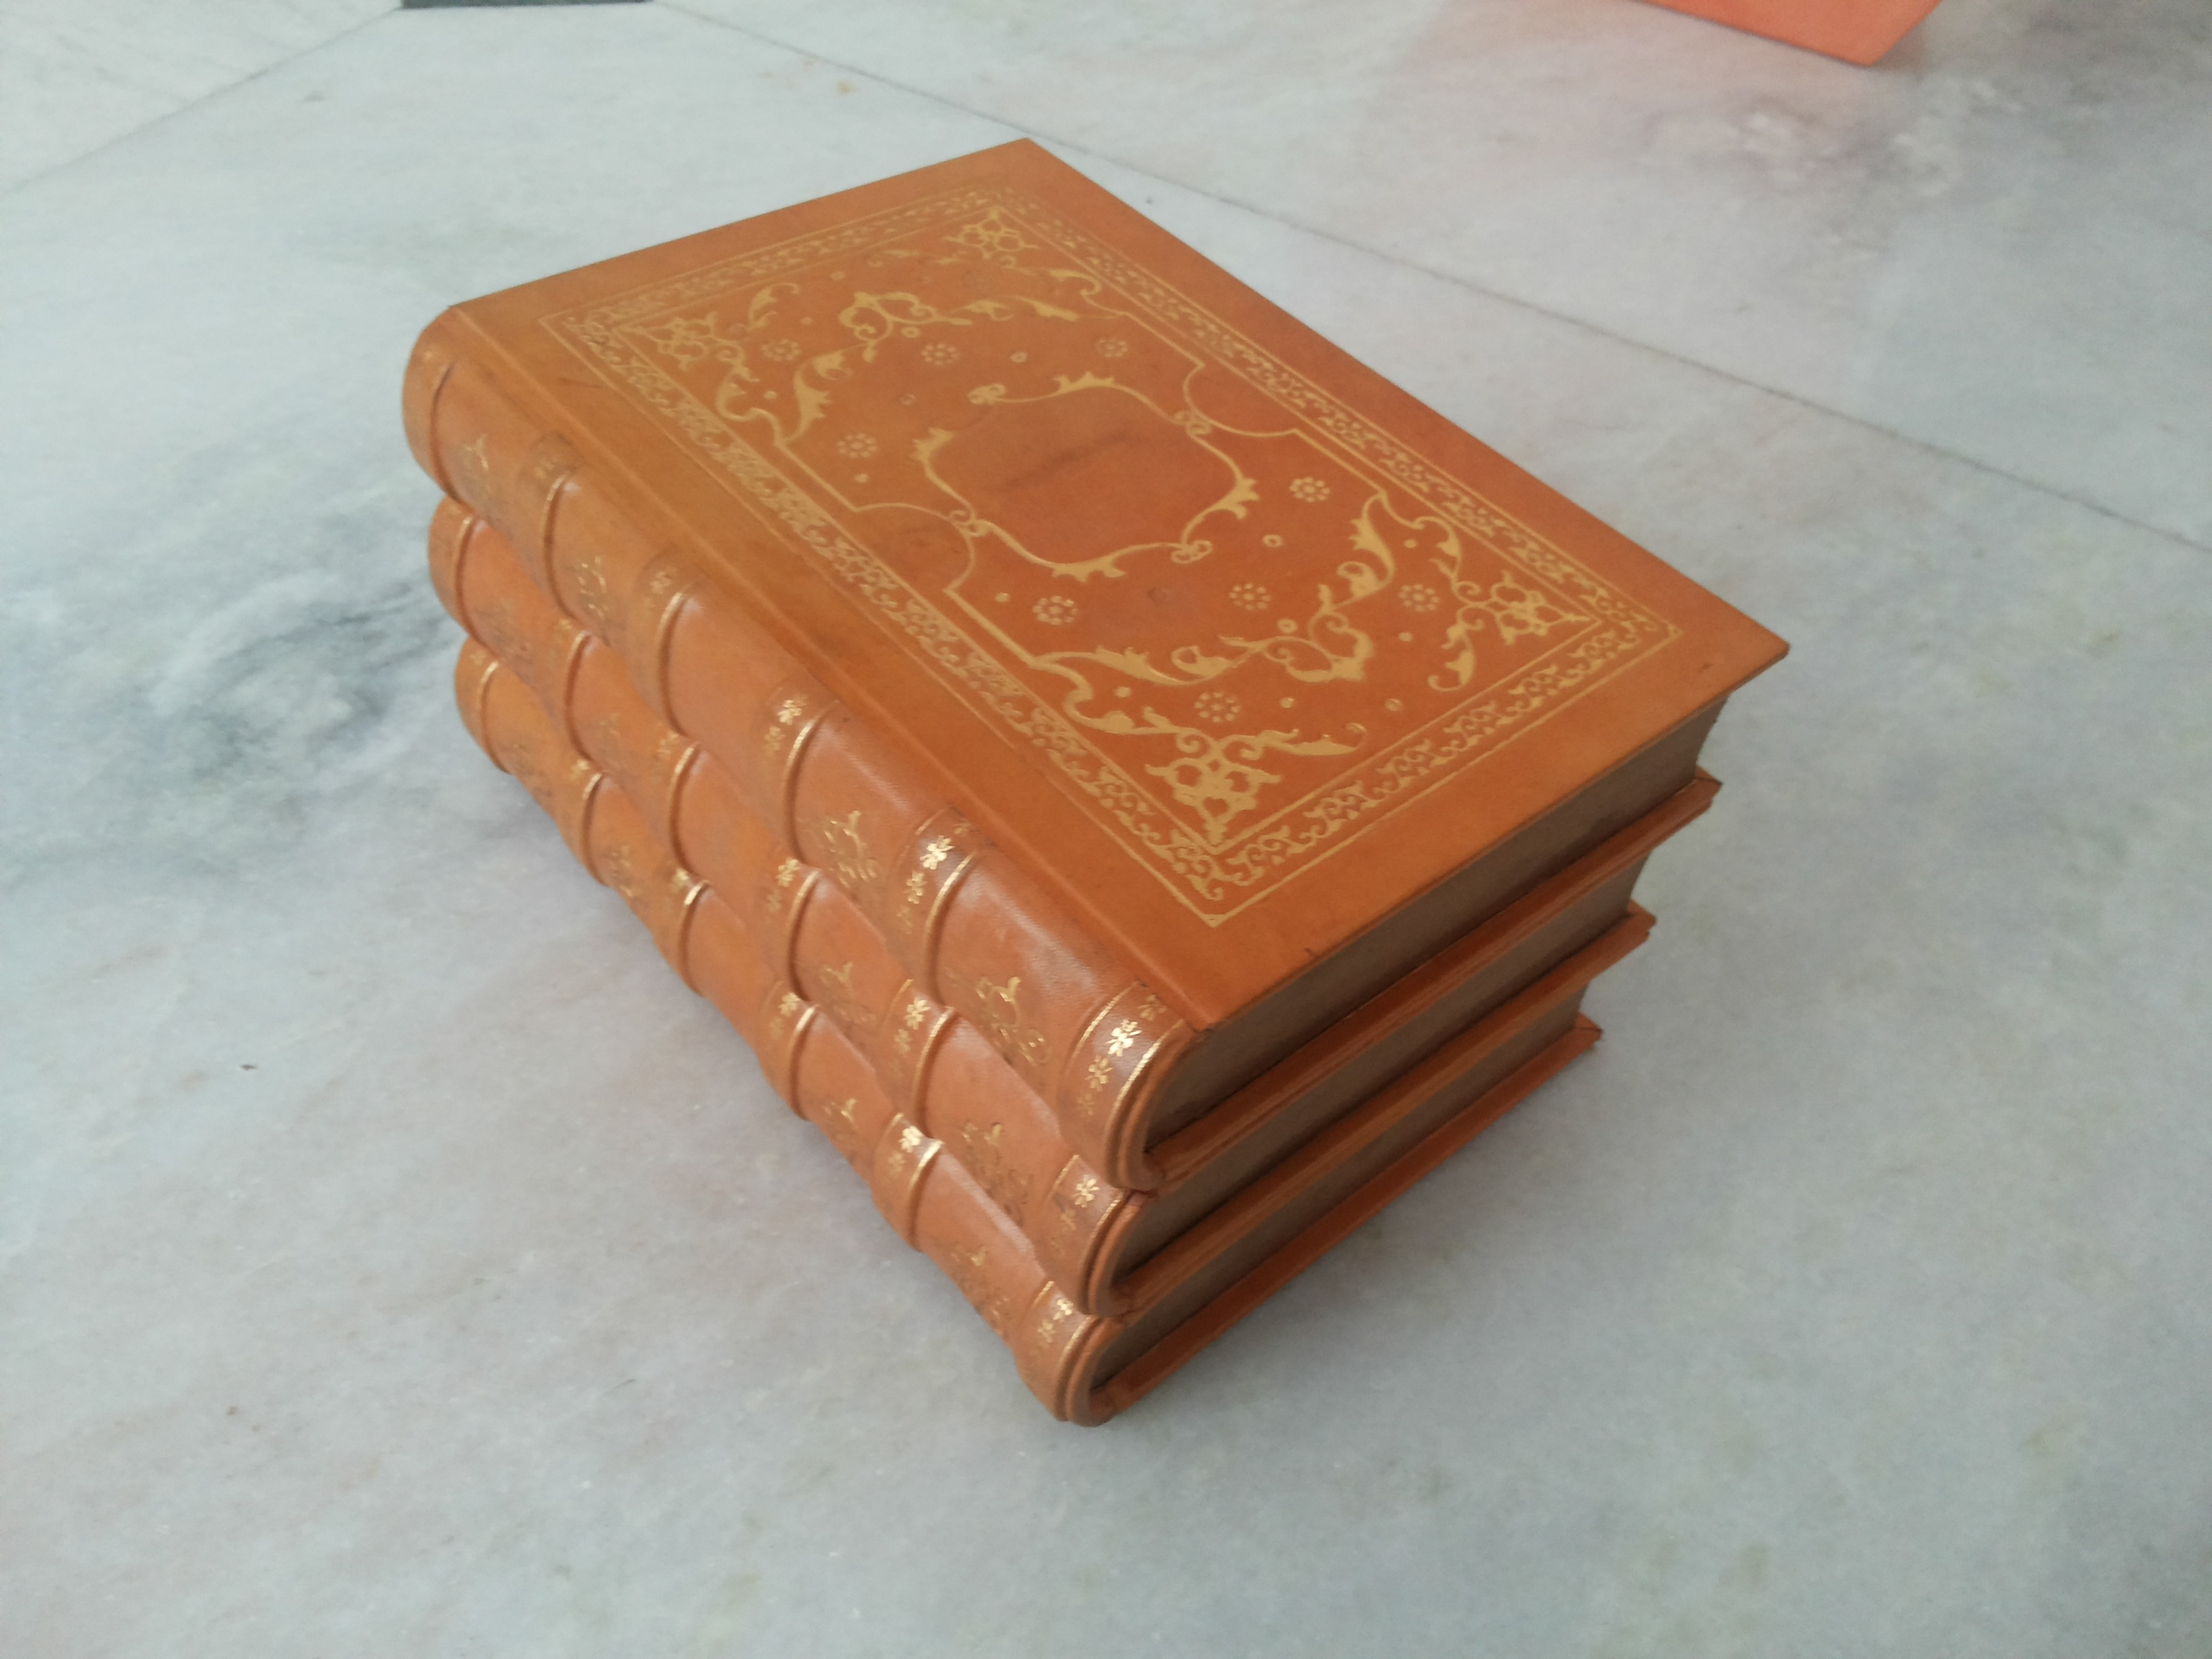 high end furniture and leather book binding manufacturer